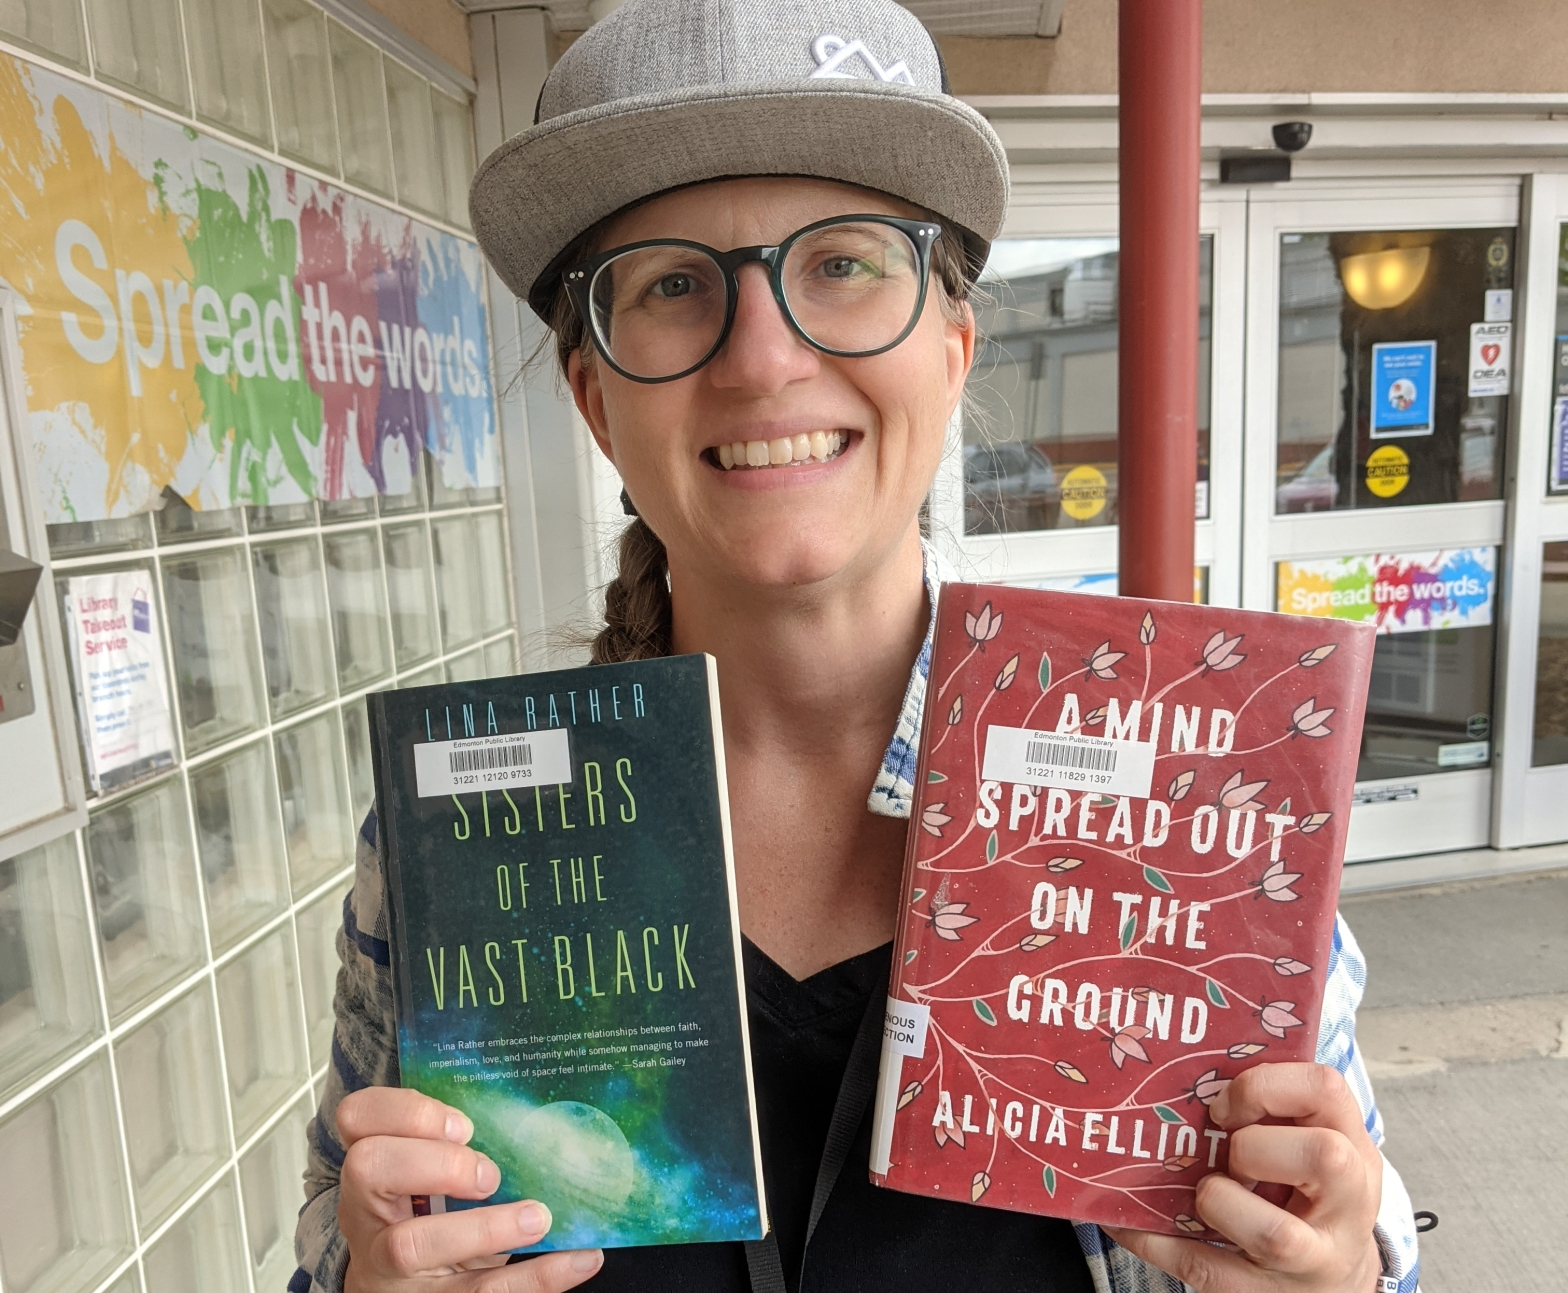 a woman wearing a grey ball cap and blue round glasses is holding up two books to the camera. the book on the left has an image of outerspace on it. the book on the right is a rich red colour with dainty drawings of leaves and flowers on it with a white title filling most of the cover.